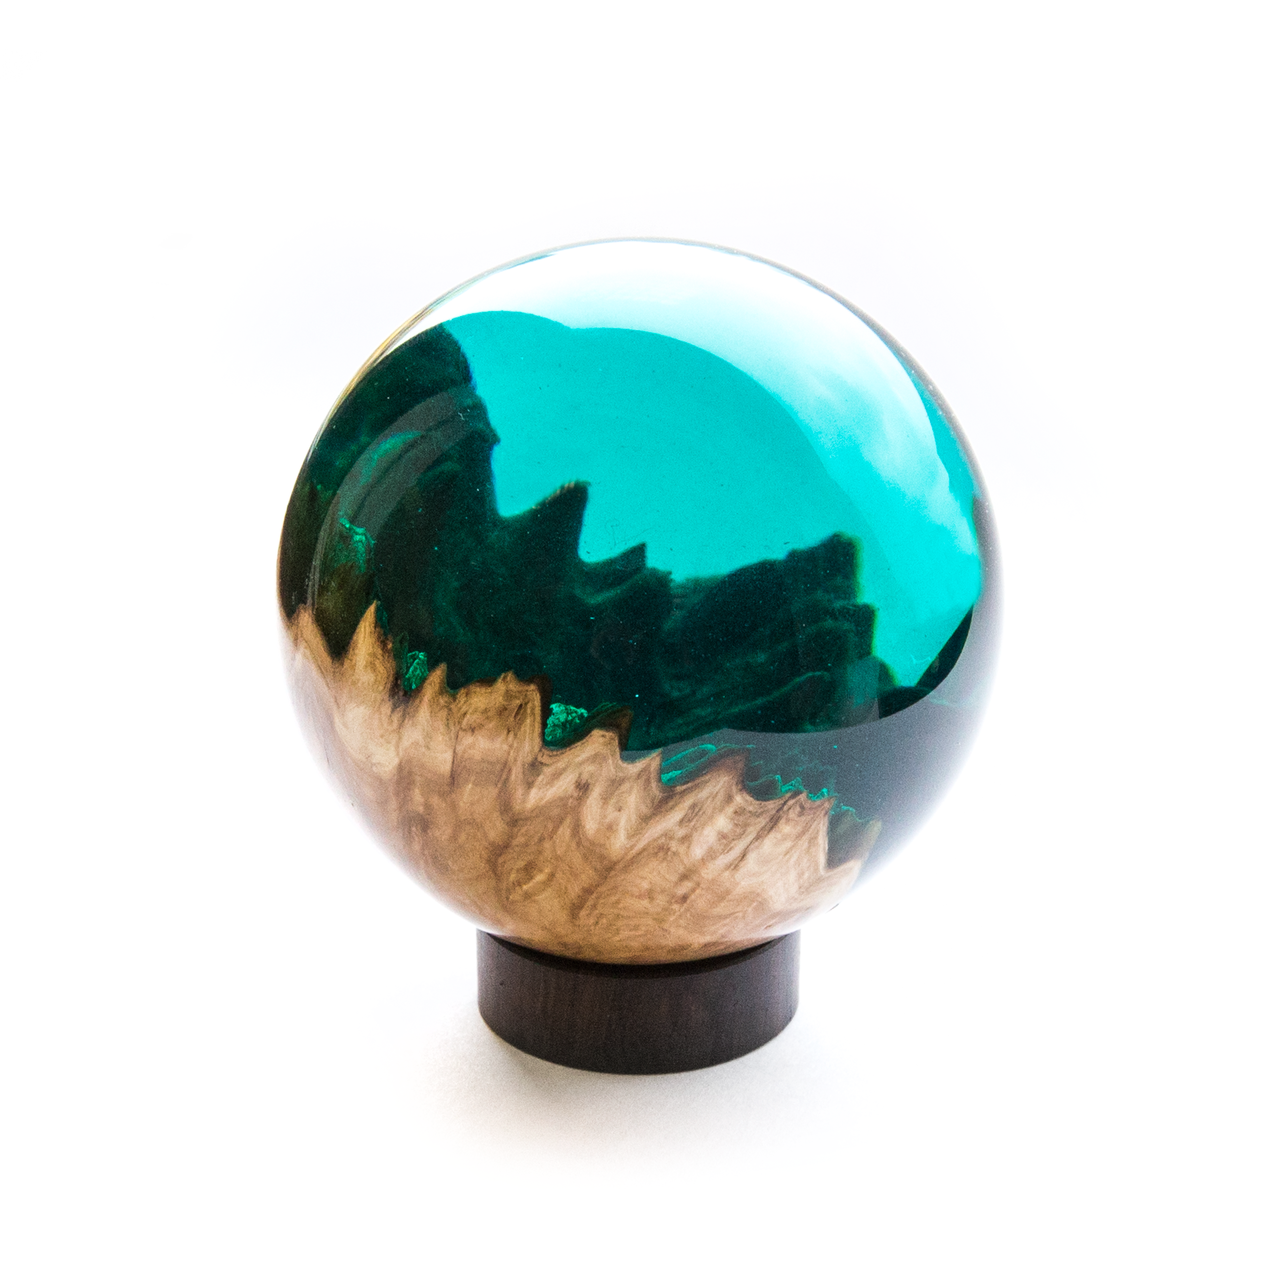 Created using Australian Mallee Burr wood and Alumilite Clear Resin. Coloured with Stream Alcohol Ink (about 6 drops).